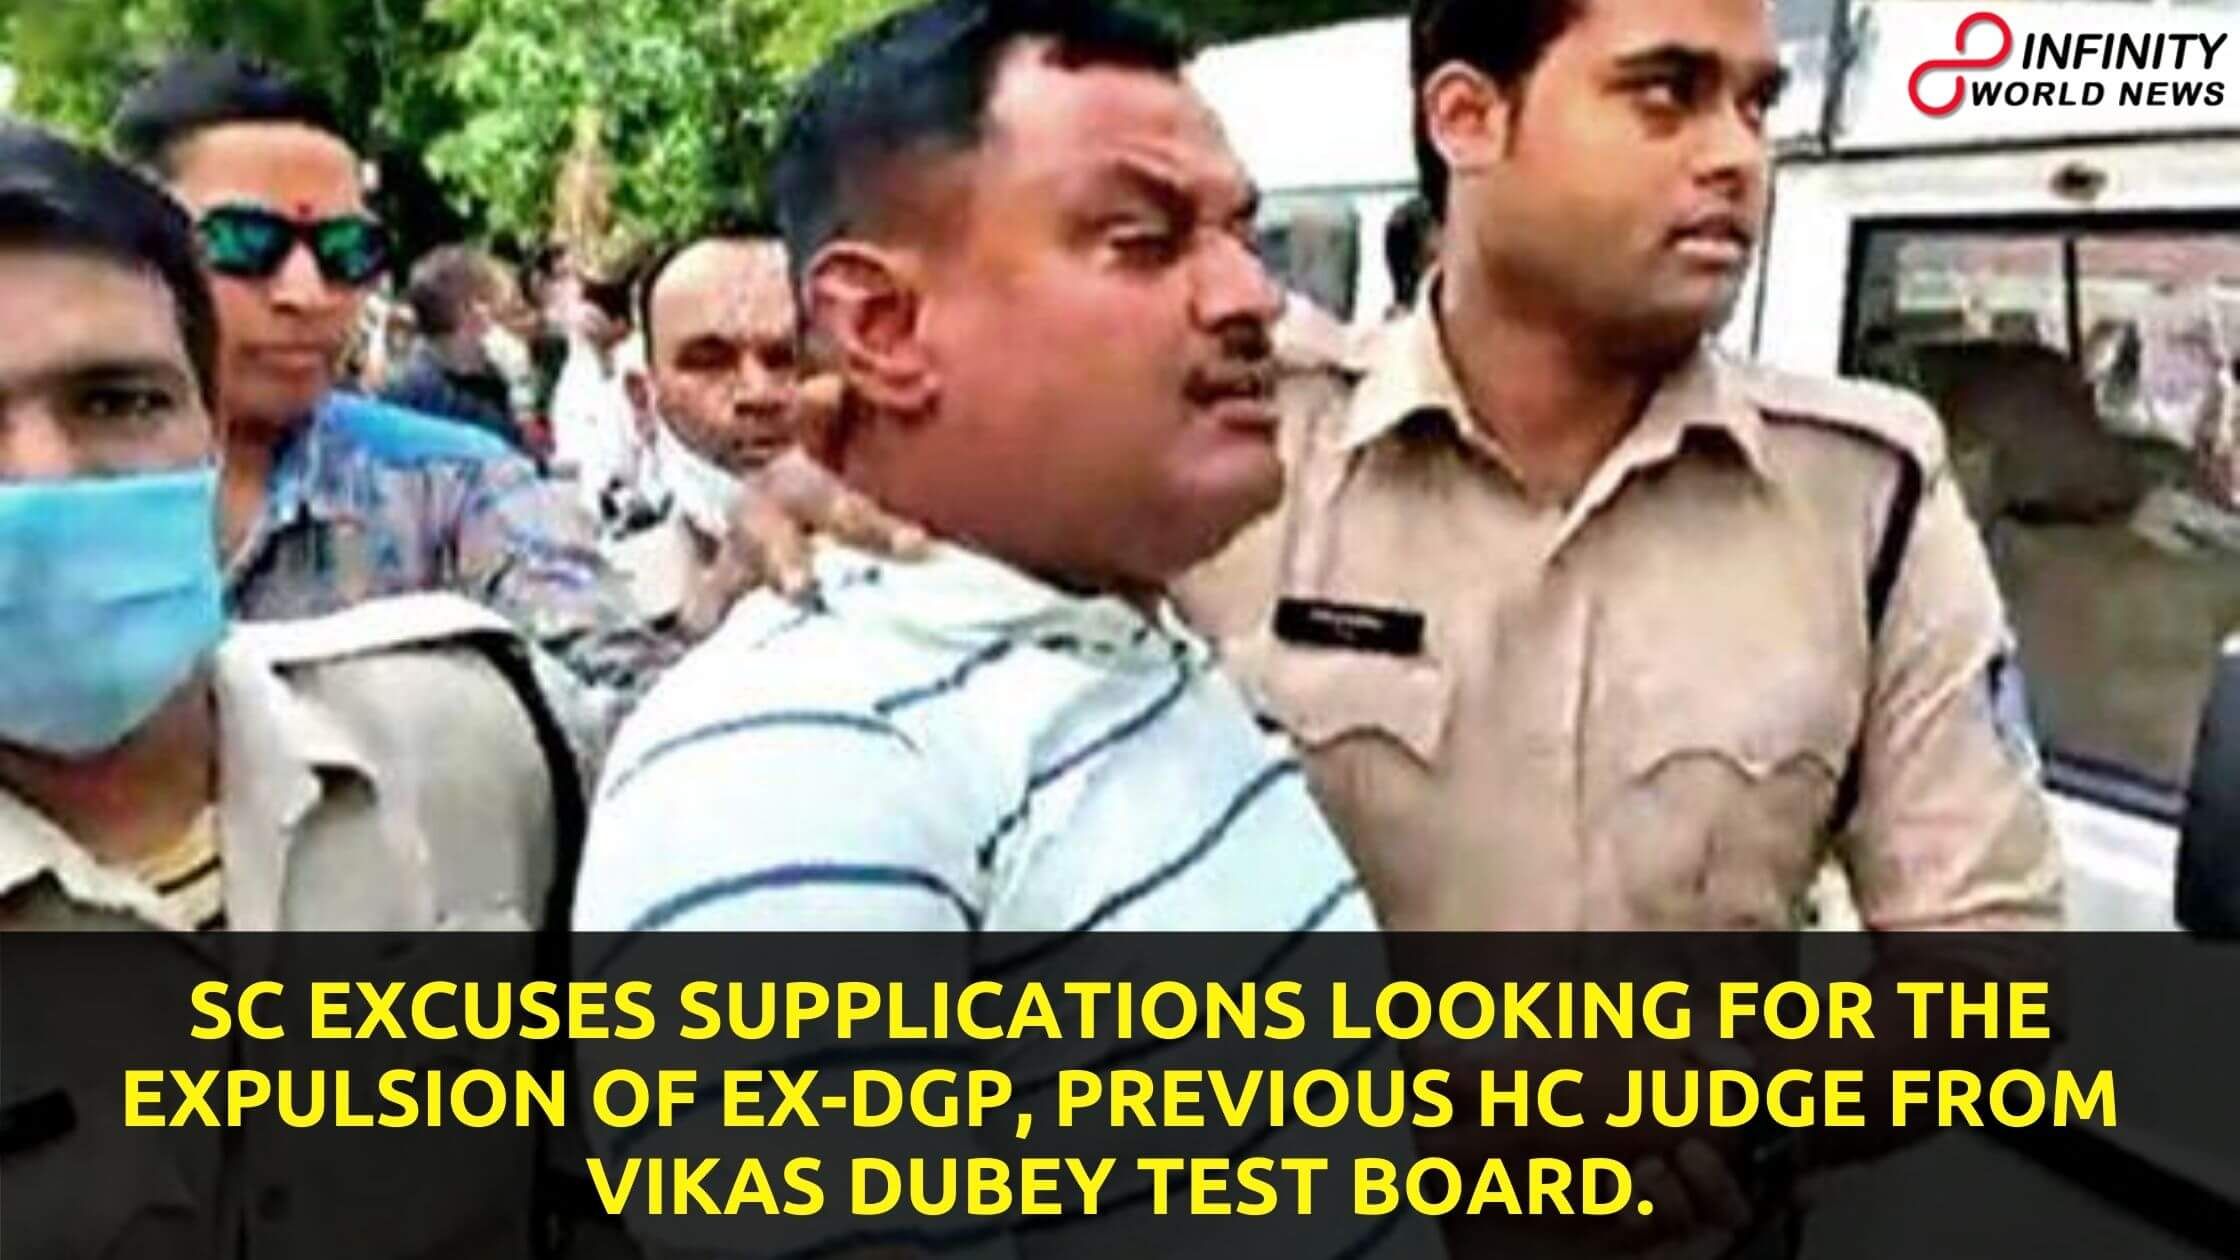 SC excuses supplications looking for the expulsion of ex-DGP, previous HC judge from Vikas Dubey test board.